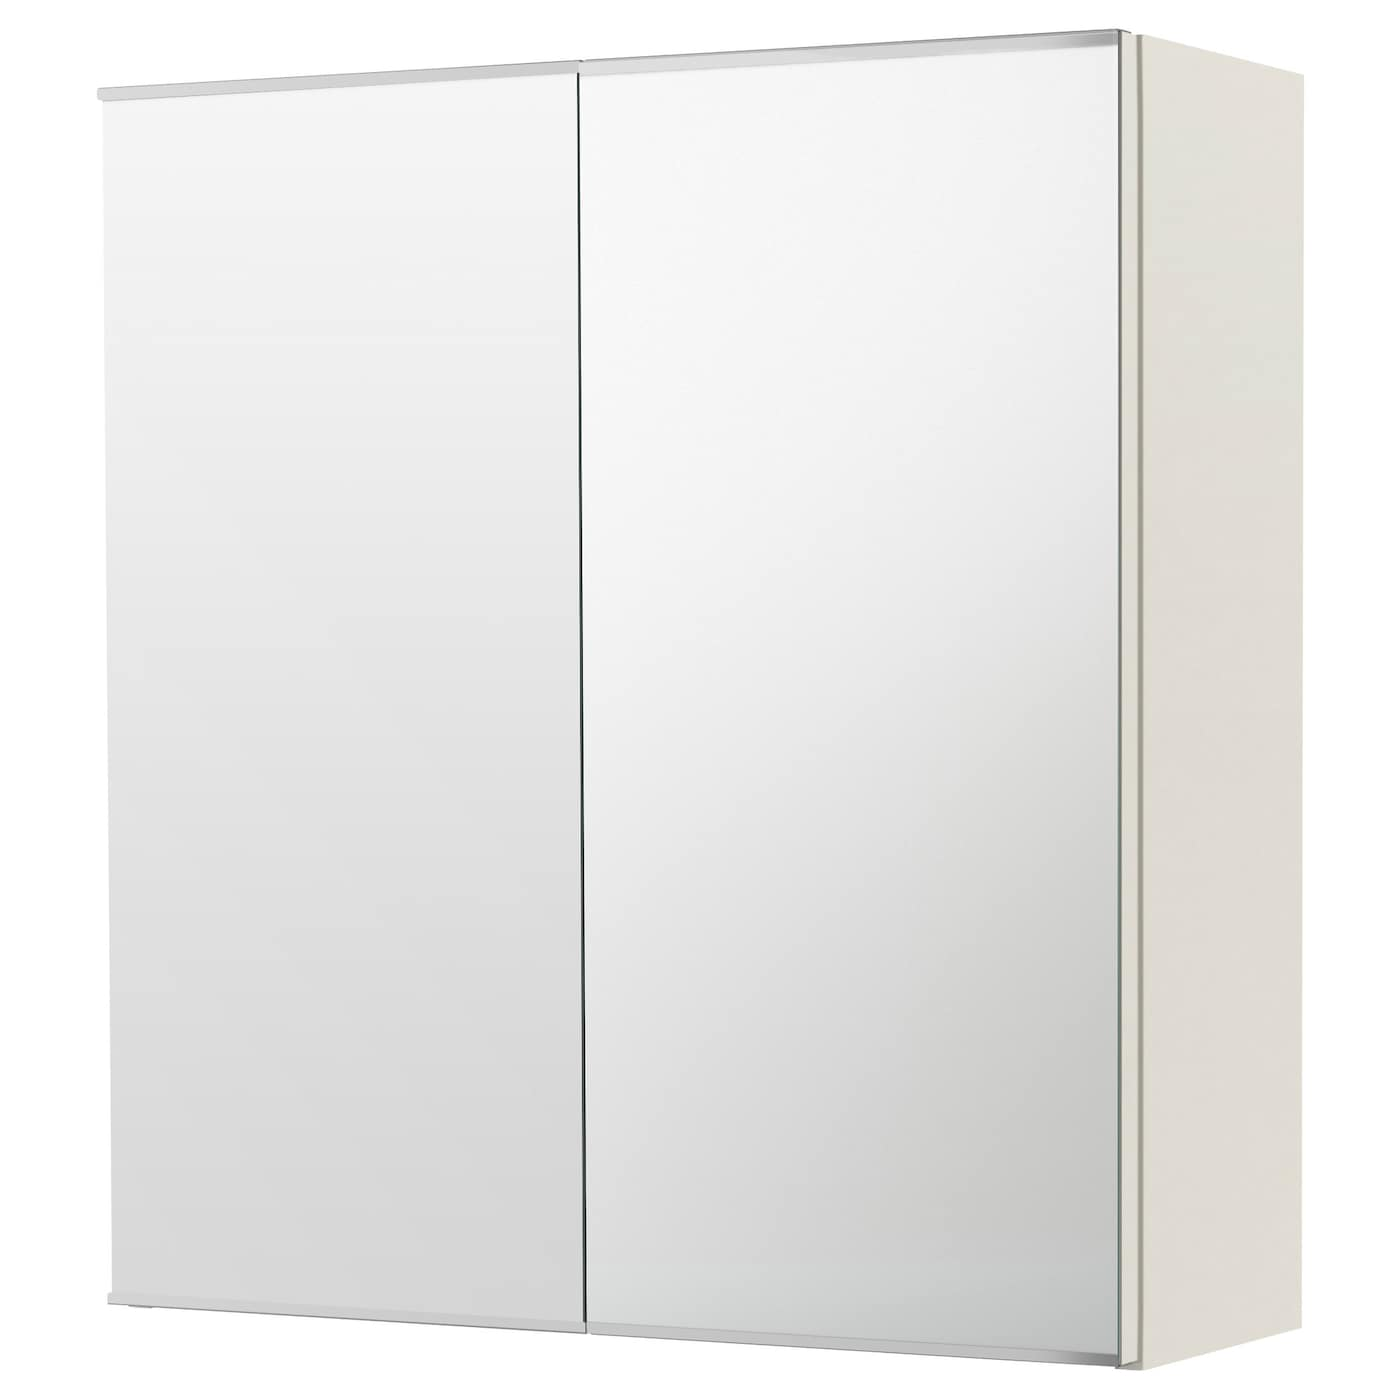 Lill ngen mirror cabinet with 2 doors white 60x21x64 cm ikea for White bath cabinet